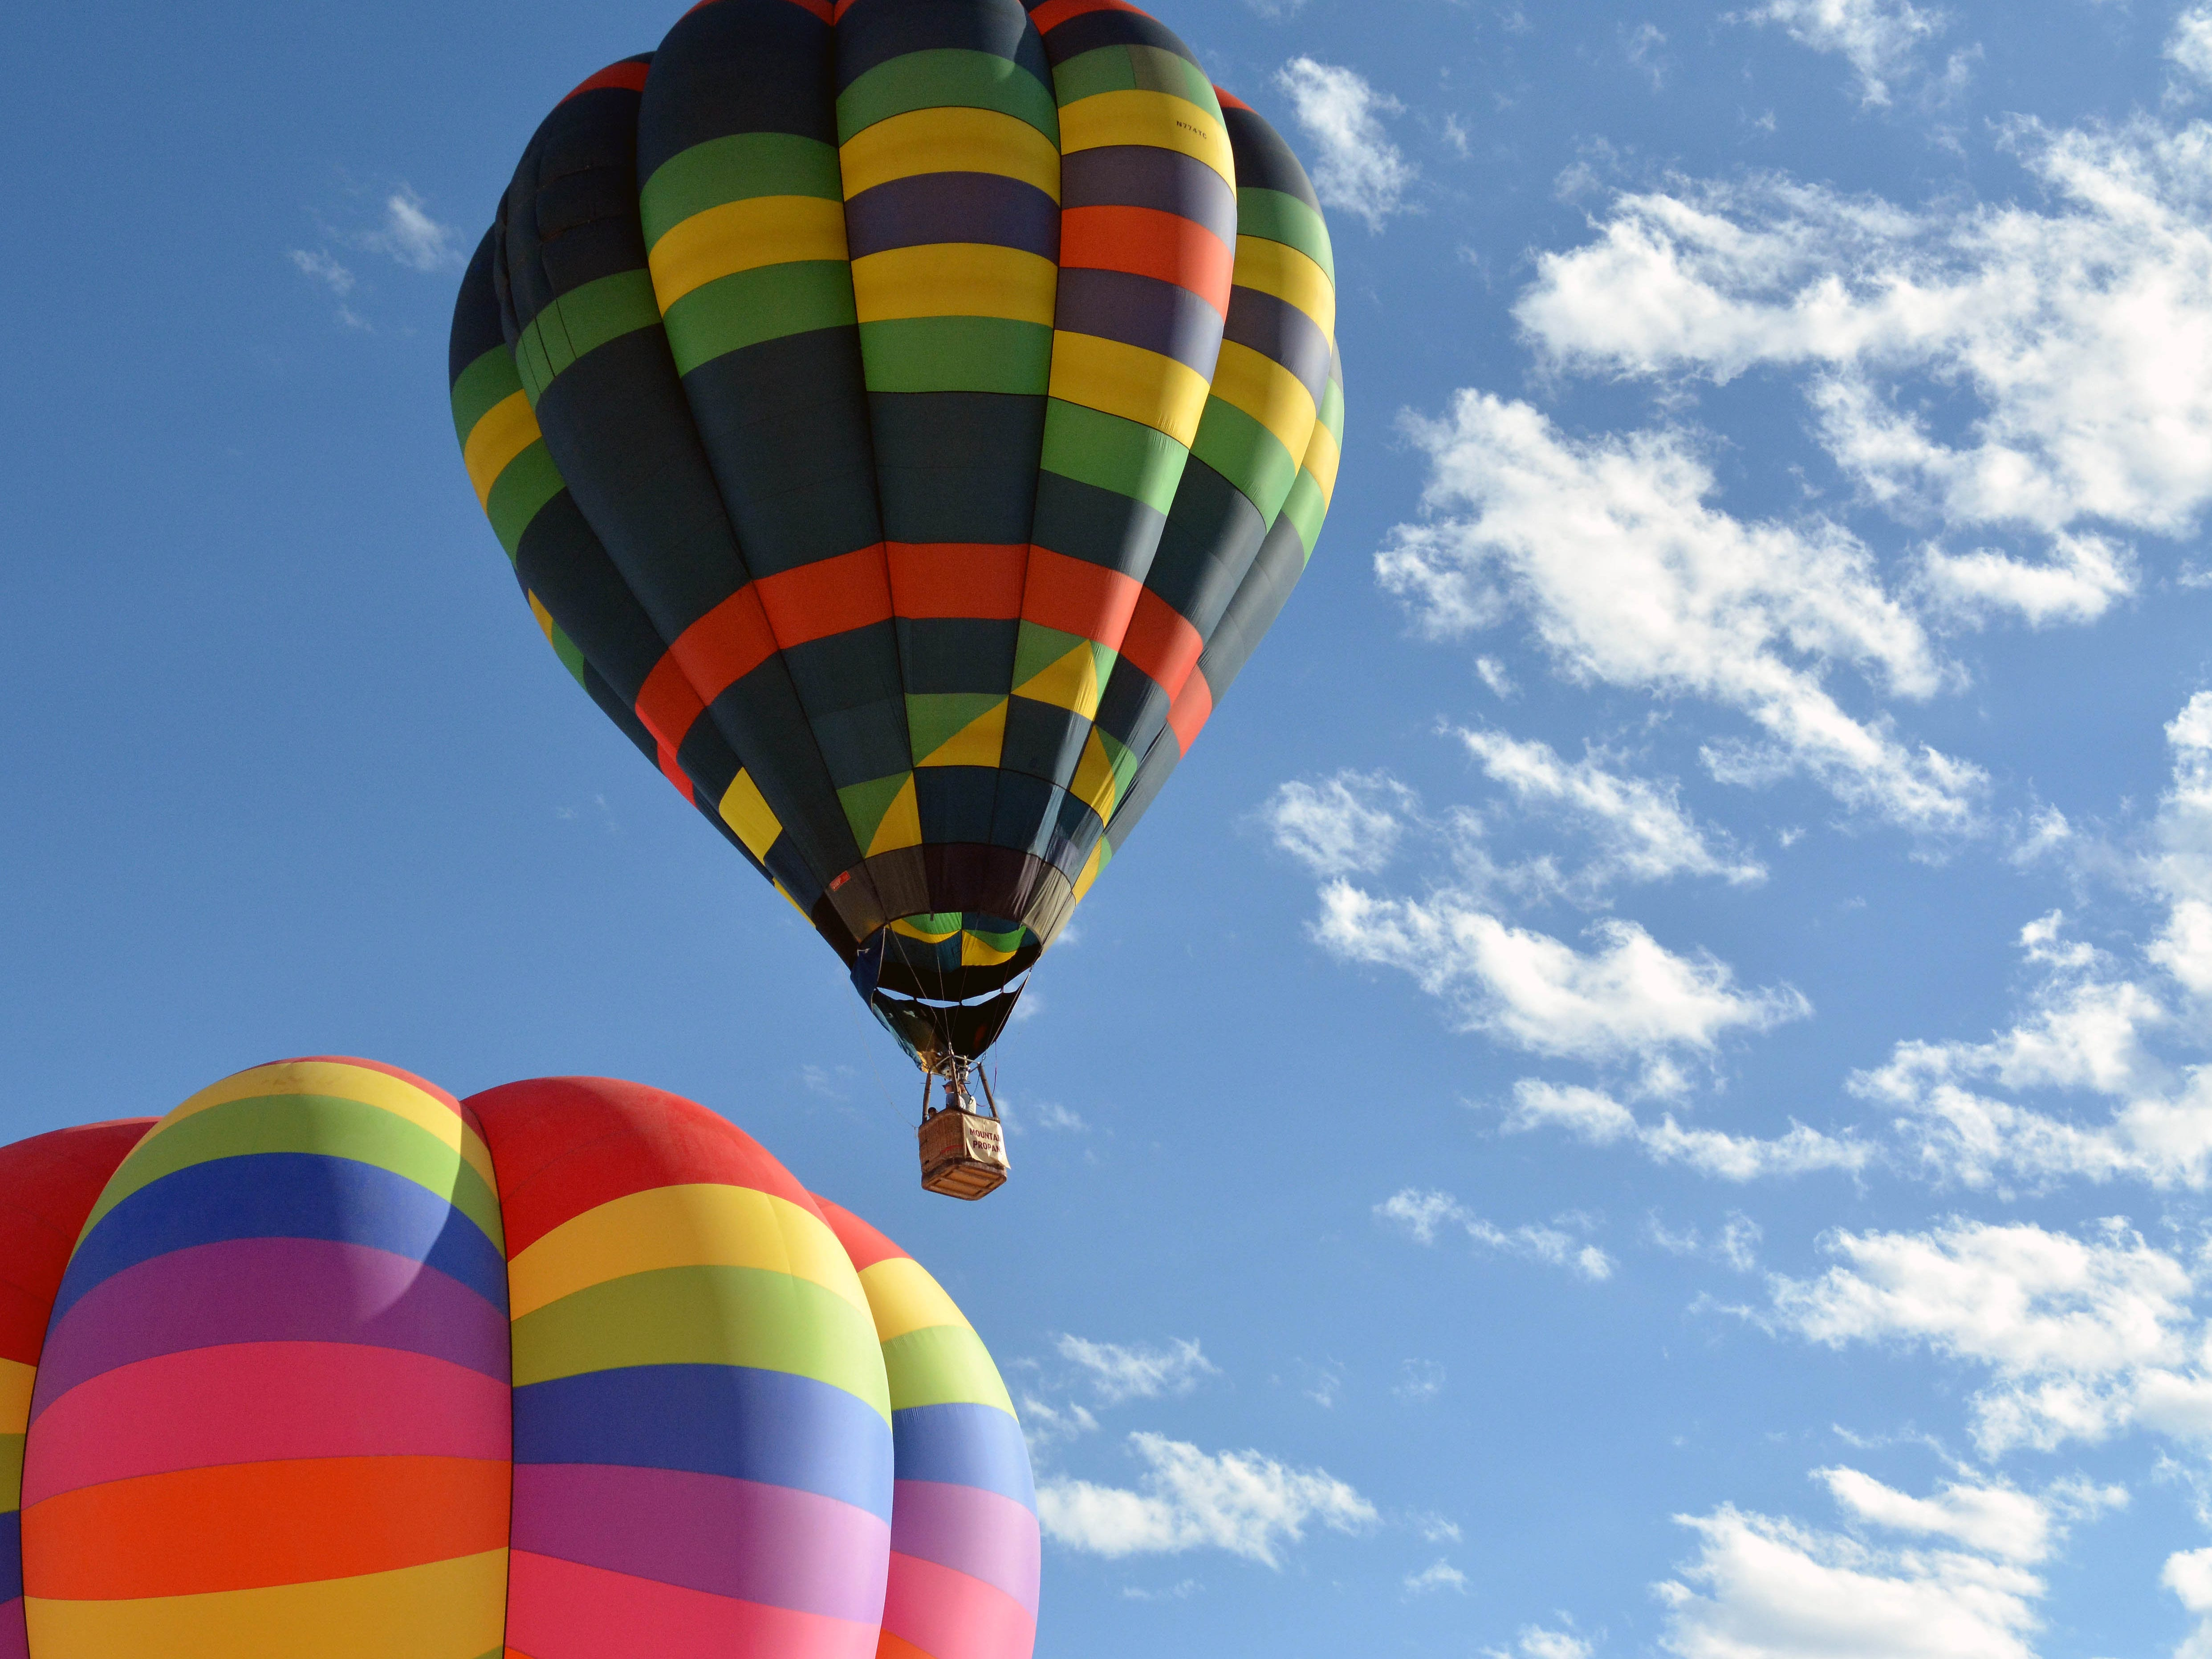 Hot air balloon launch Saturday, Sept. 15, 2018 at the White Sands Balloon Invitational.